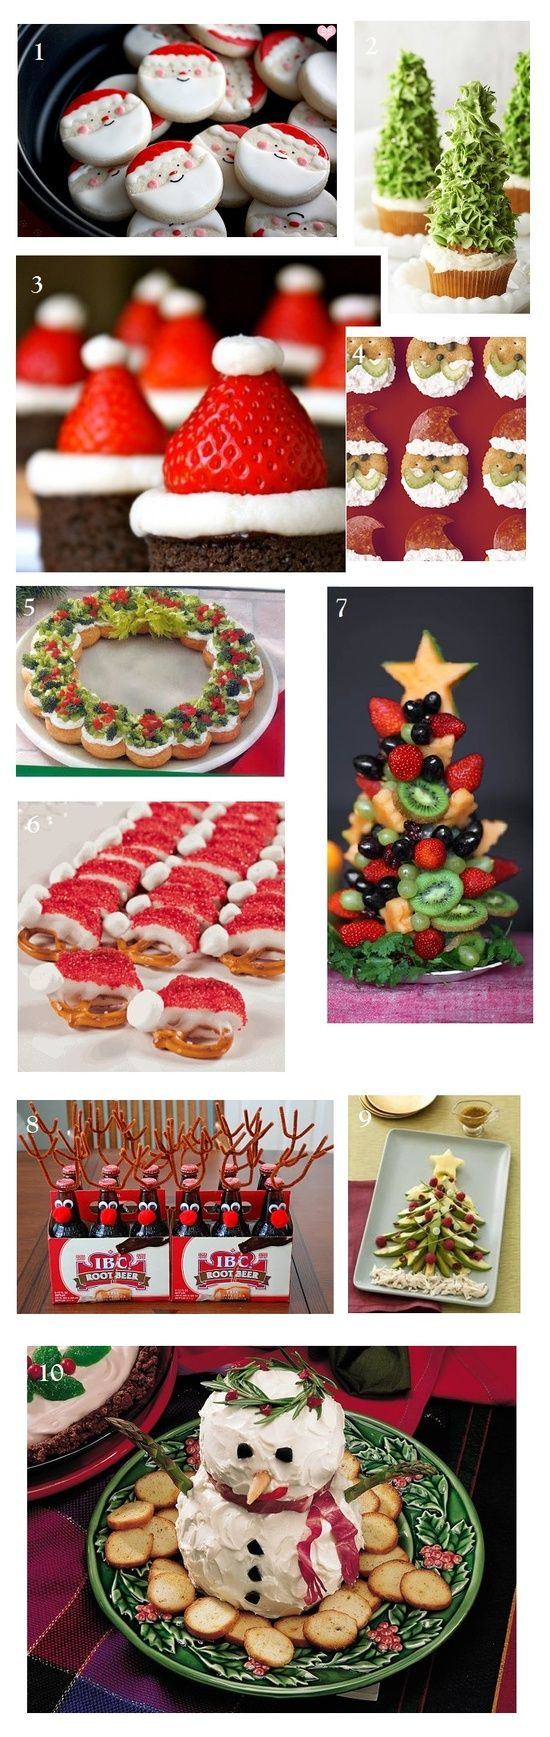 These holiday party food ideas are adorable! #holidayparty #Christmas #holidayrecipe